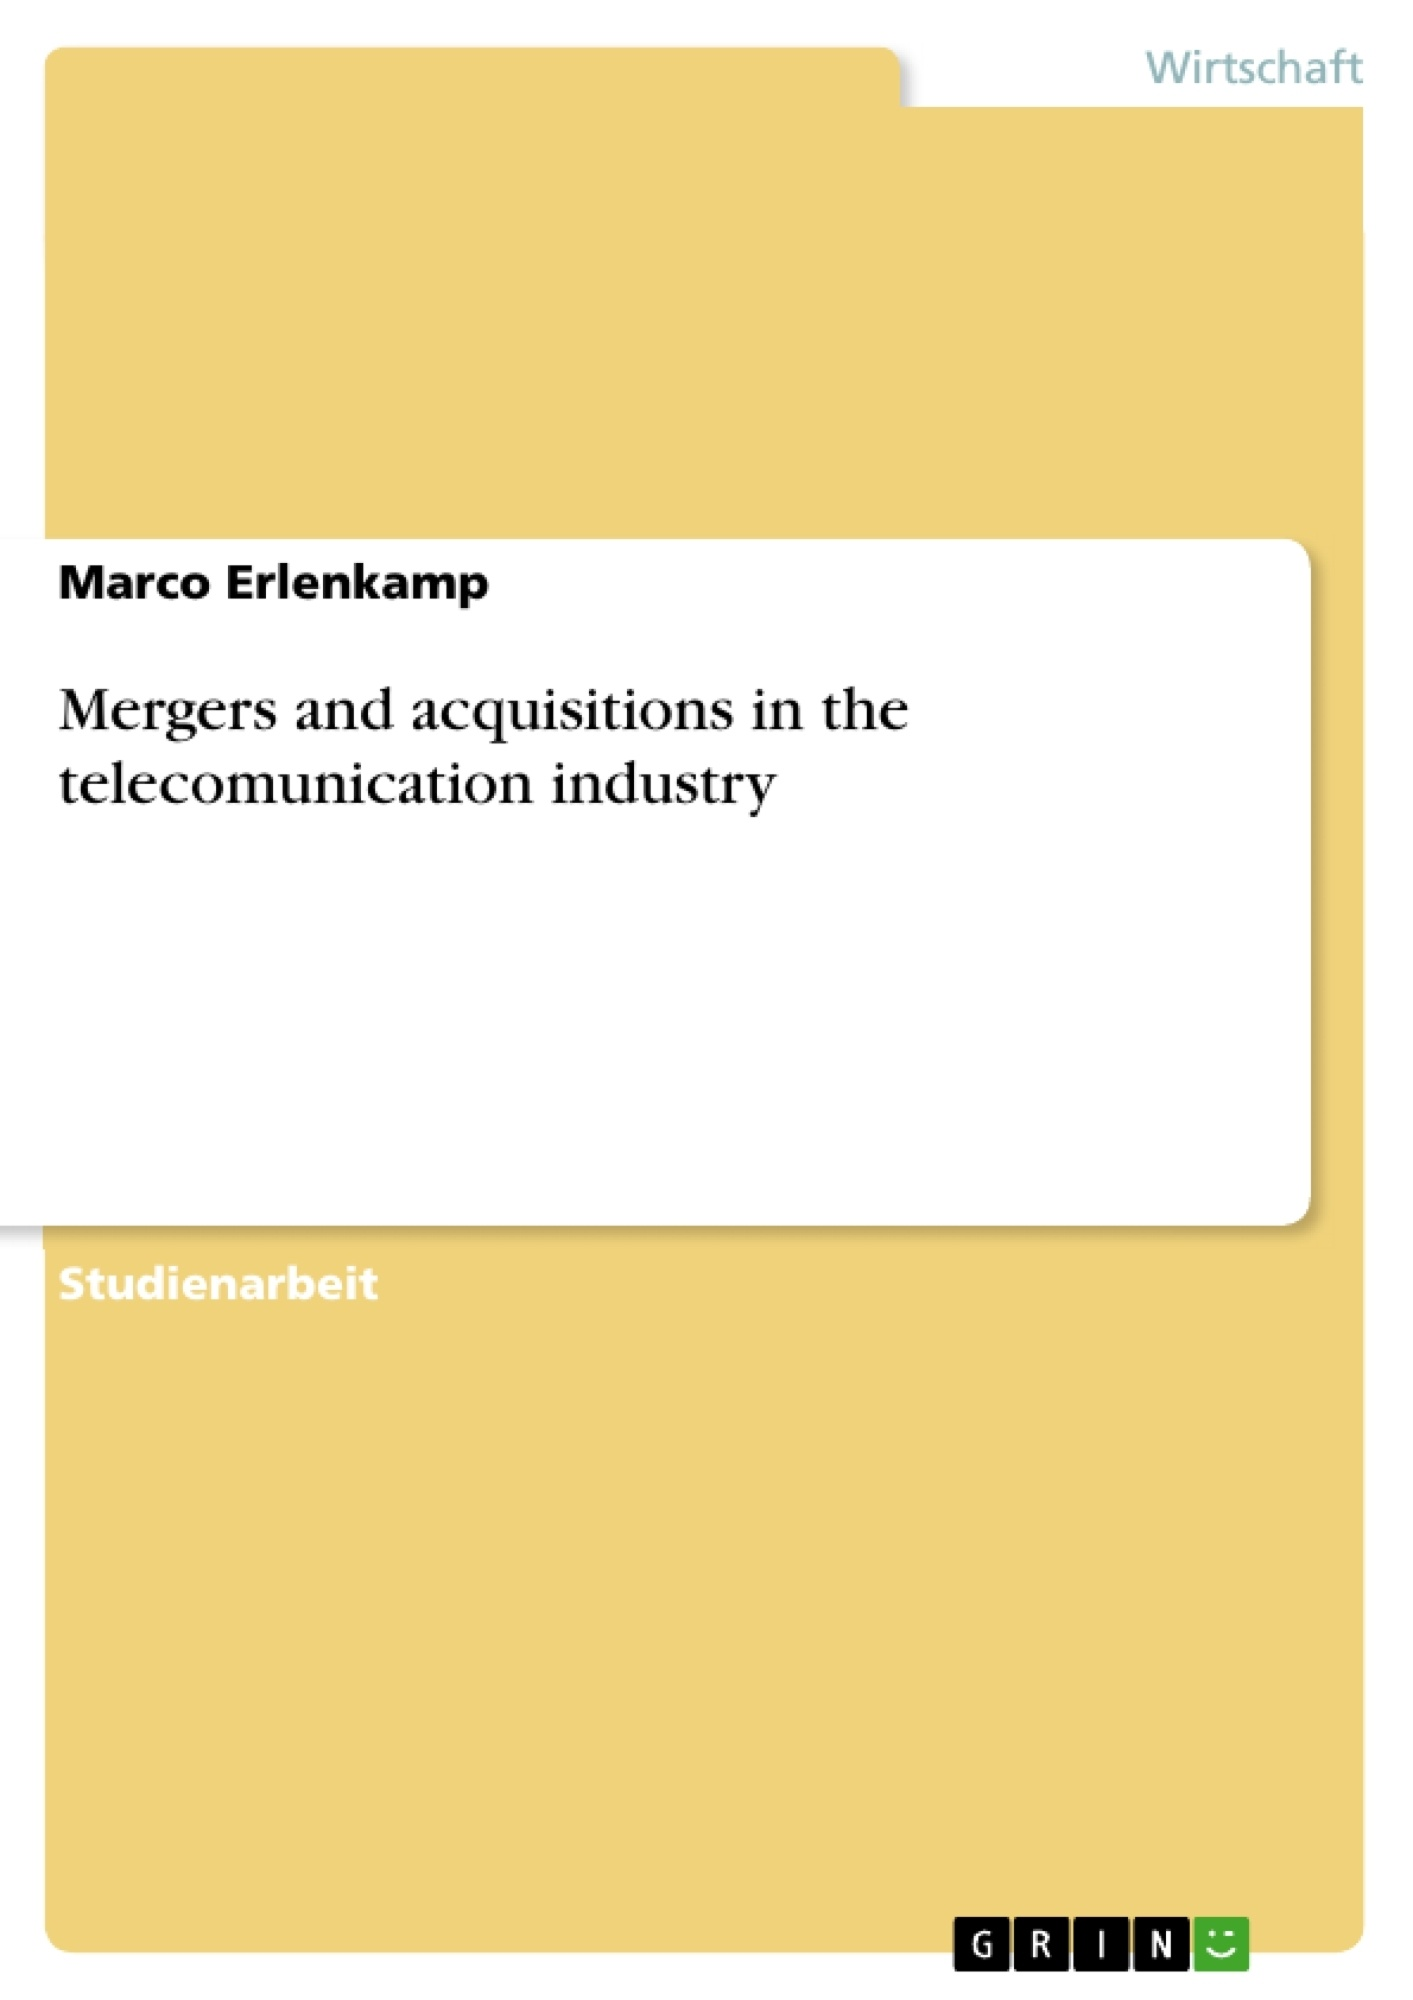 Titel: Mergers and acquisitions in the telecomunication industry